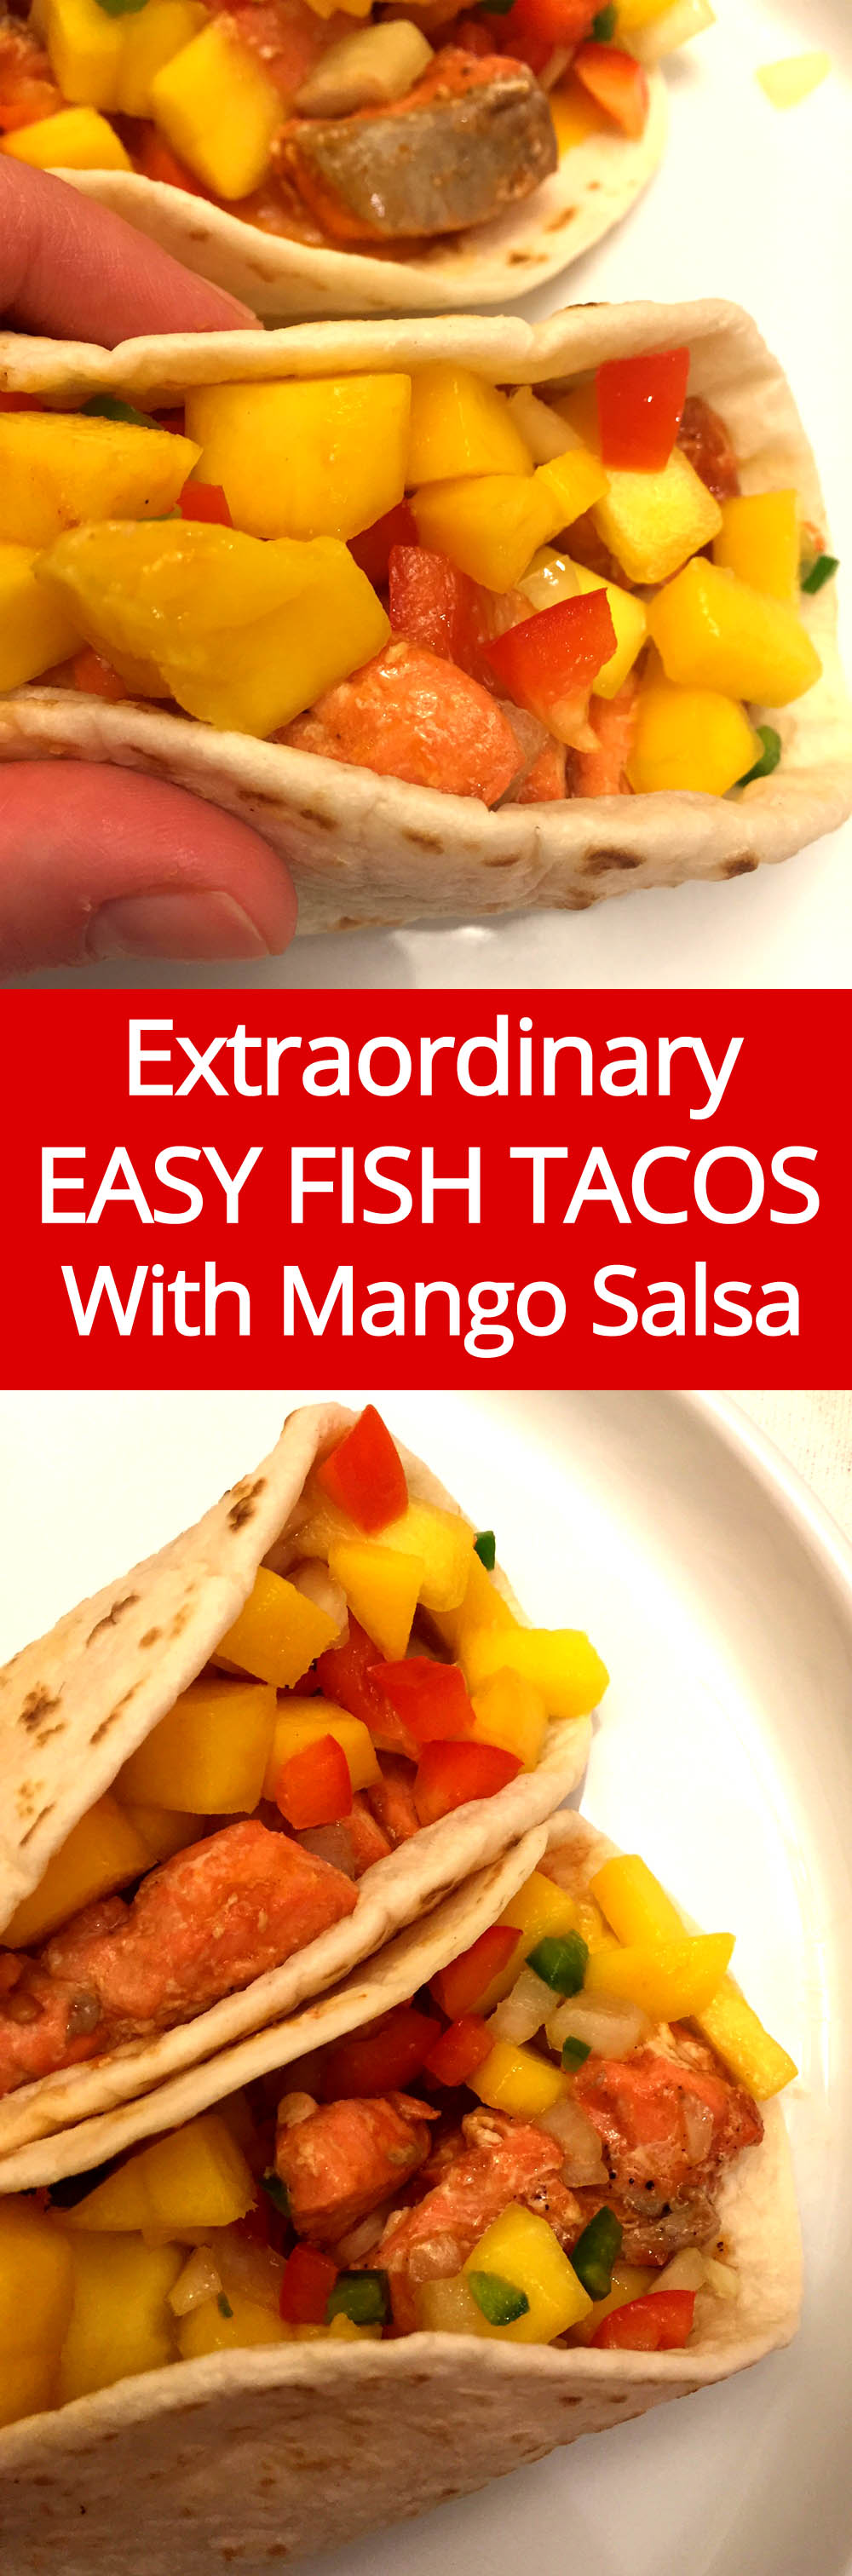 Easy Fish Tacos Recipe With Mango Salsa - mouthwatering!